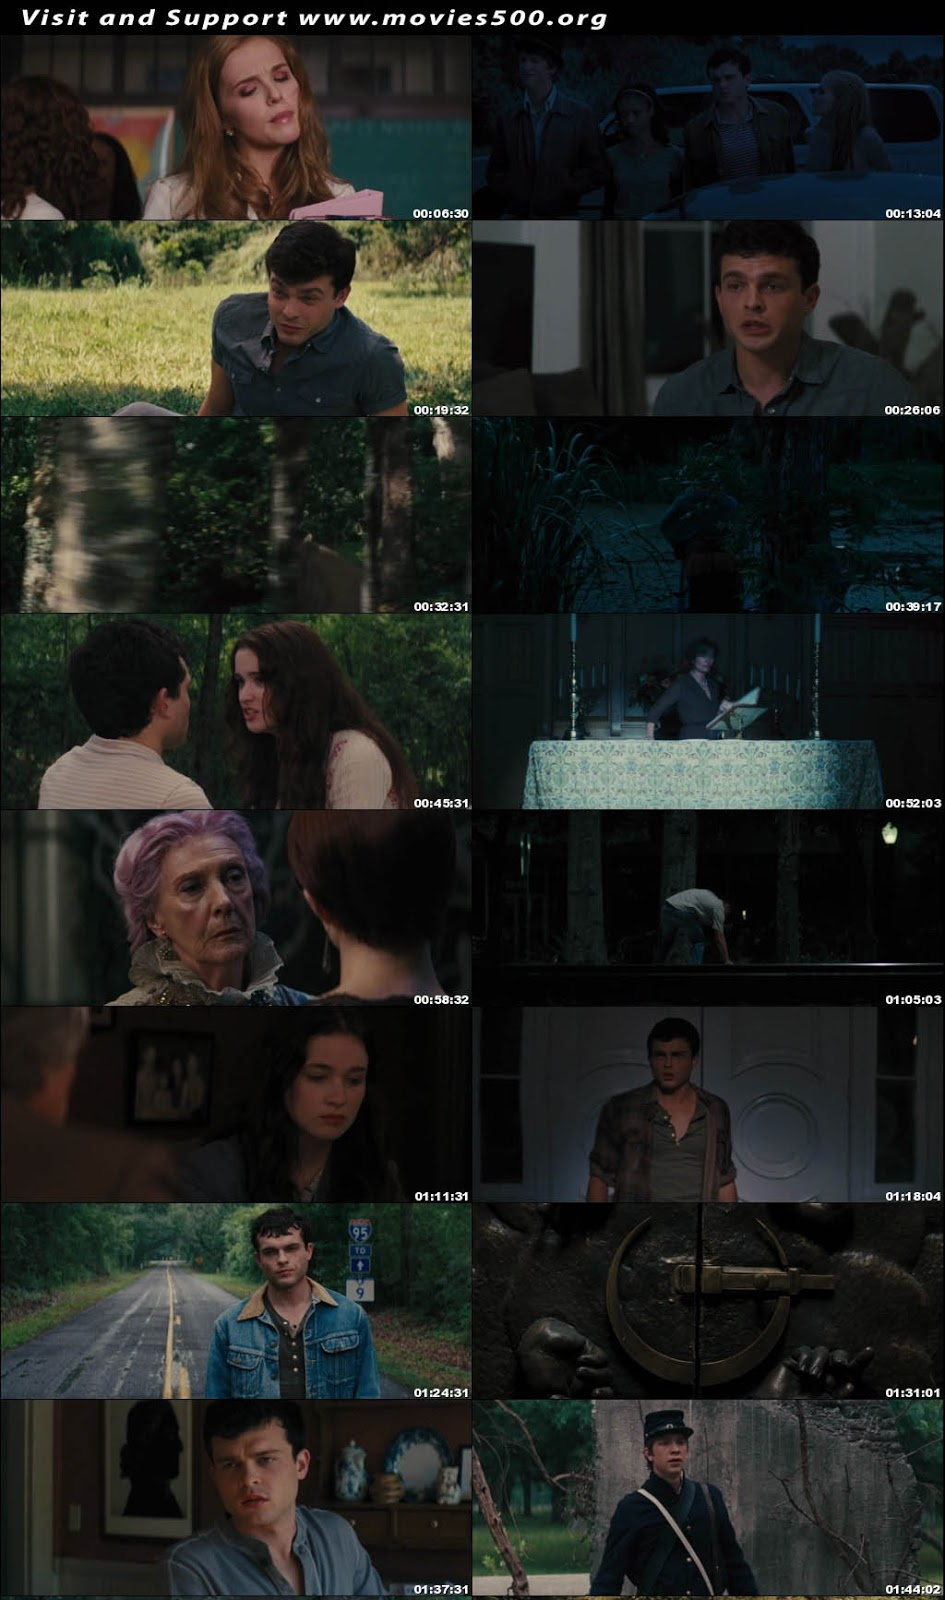 Beautiful Creatures 2013 Full Mobile for Mobile Downlaod HEVC at xcharge.net